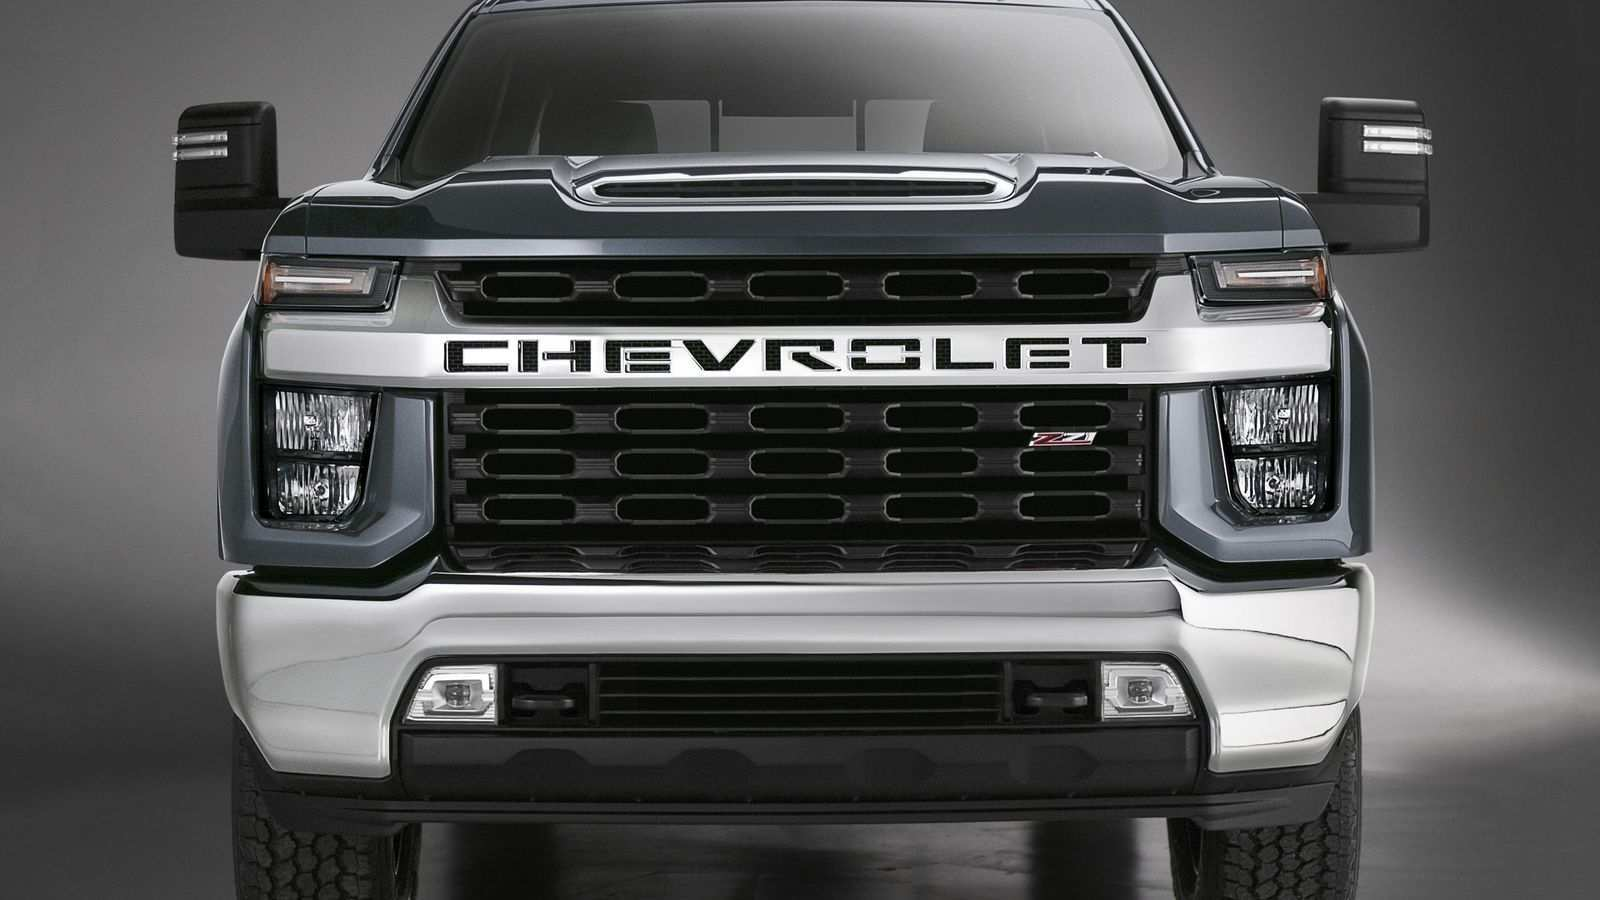 60 All New 2020 Chevrolet Silverado Ugly New Review